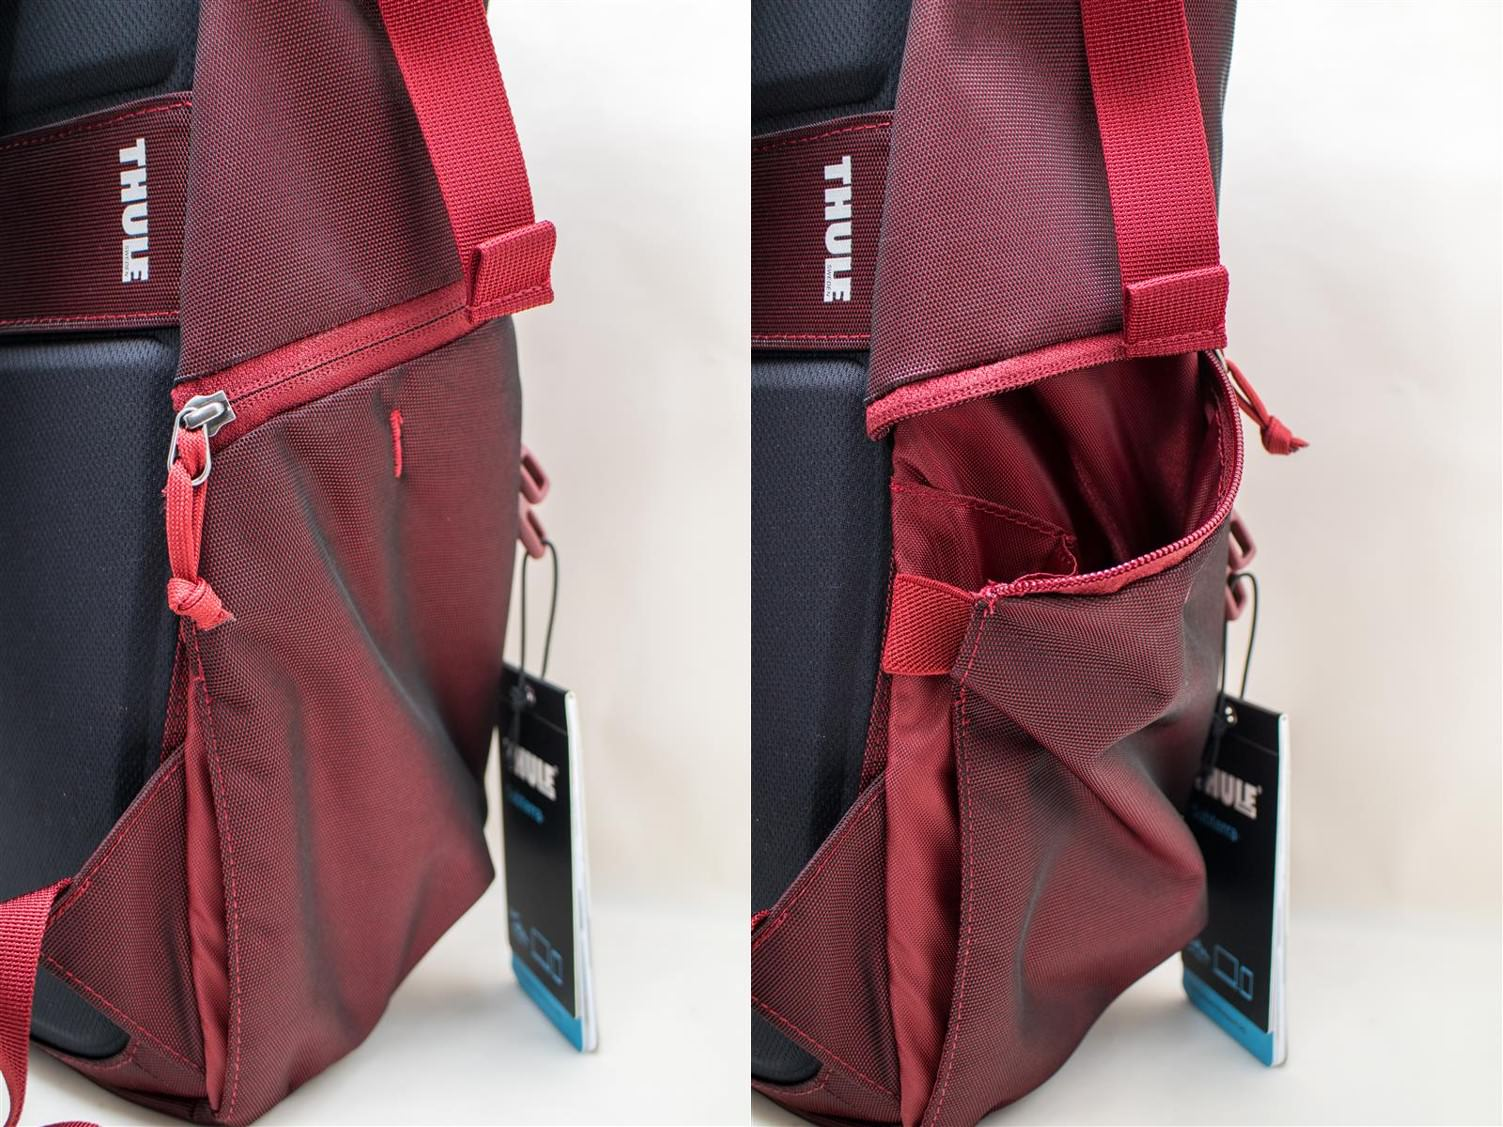 Thule Subterra Travel Backpack